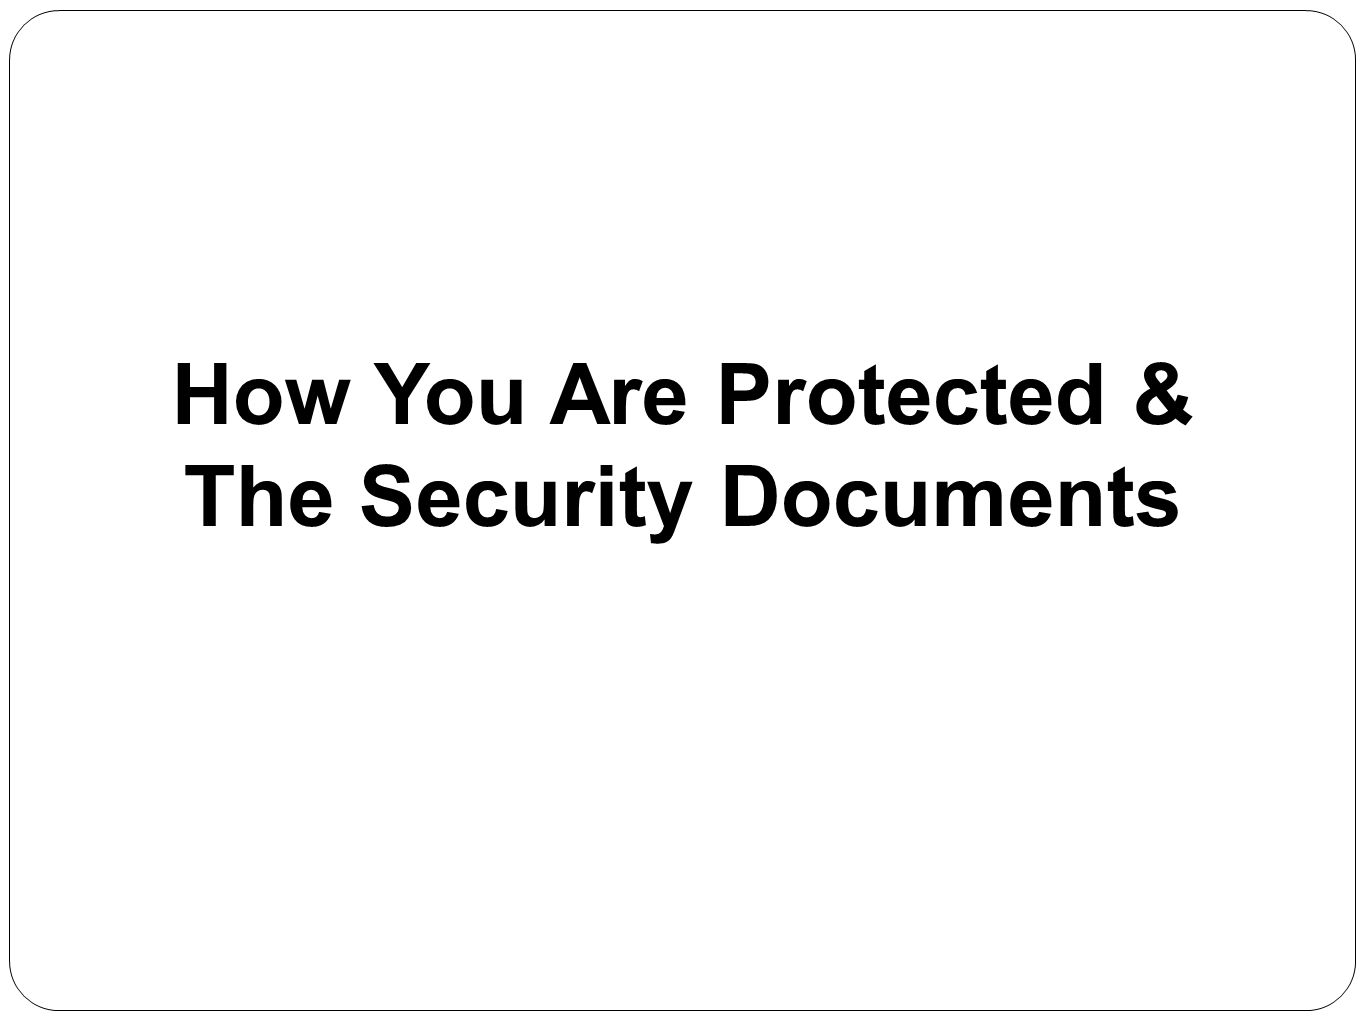 The Security Documents